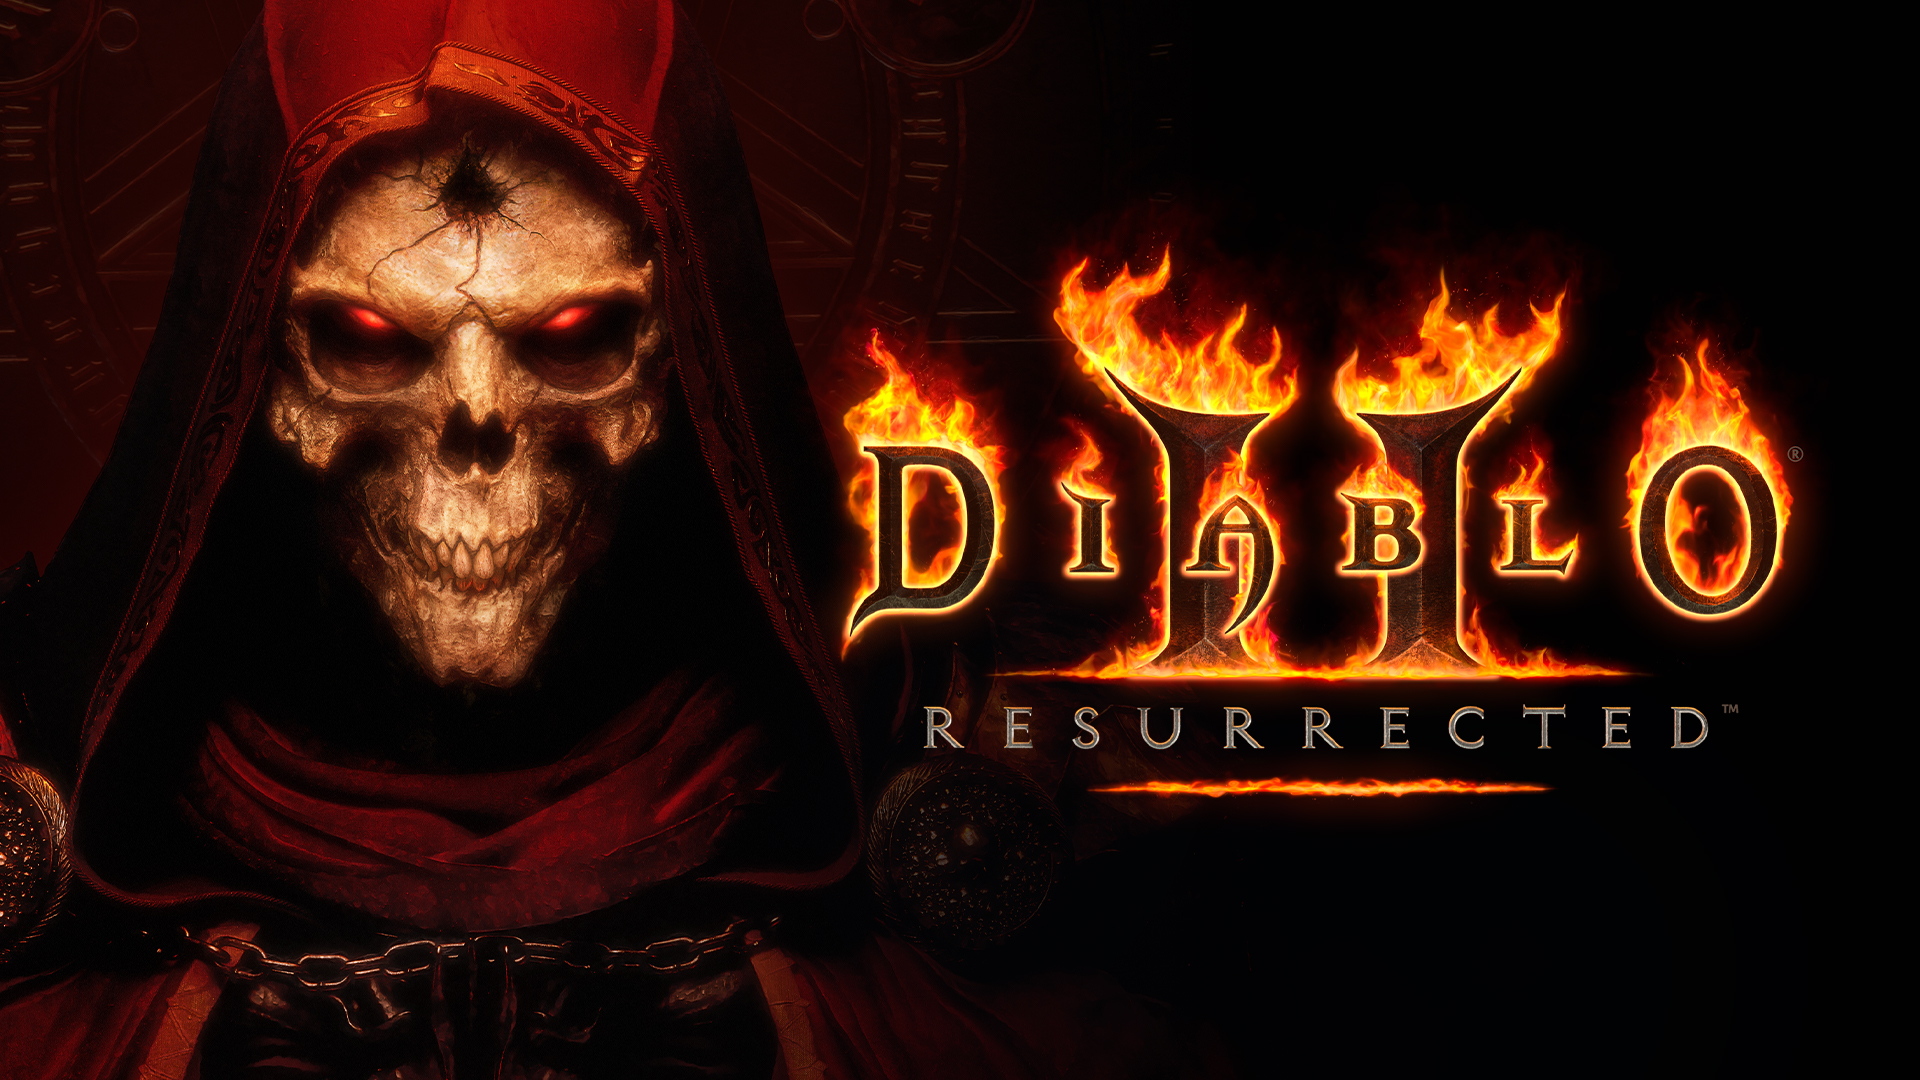 You can use your old save files in Diablo II: Resurrected